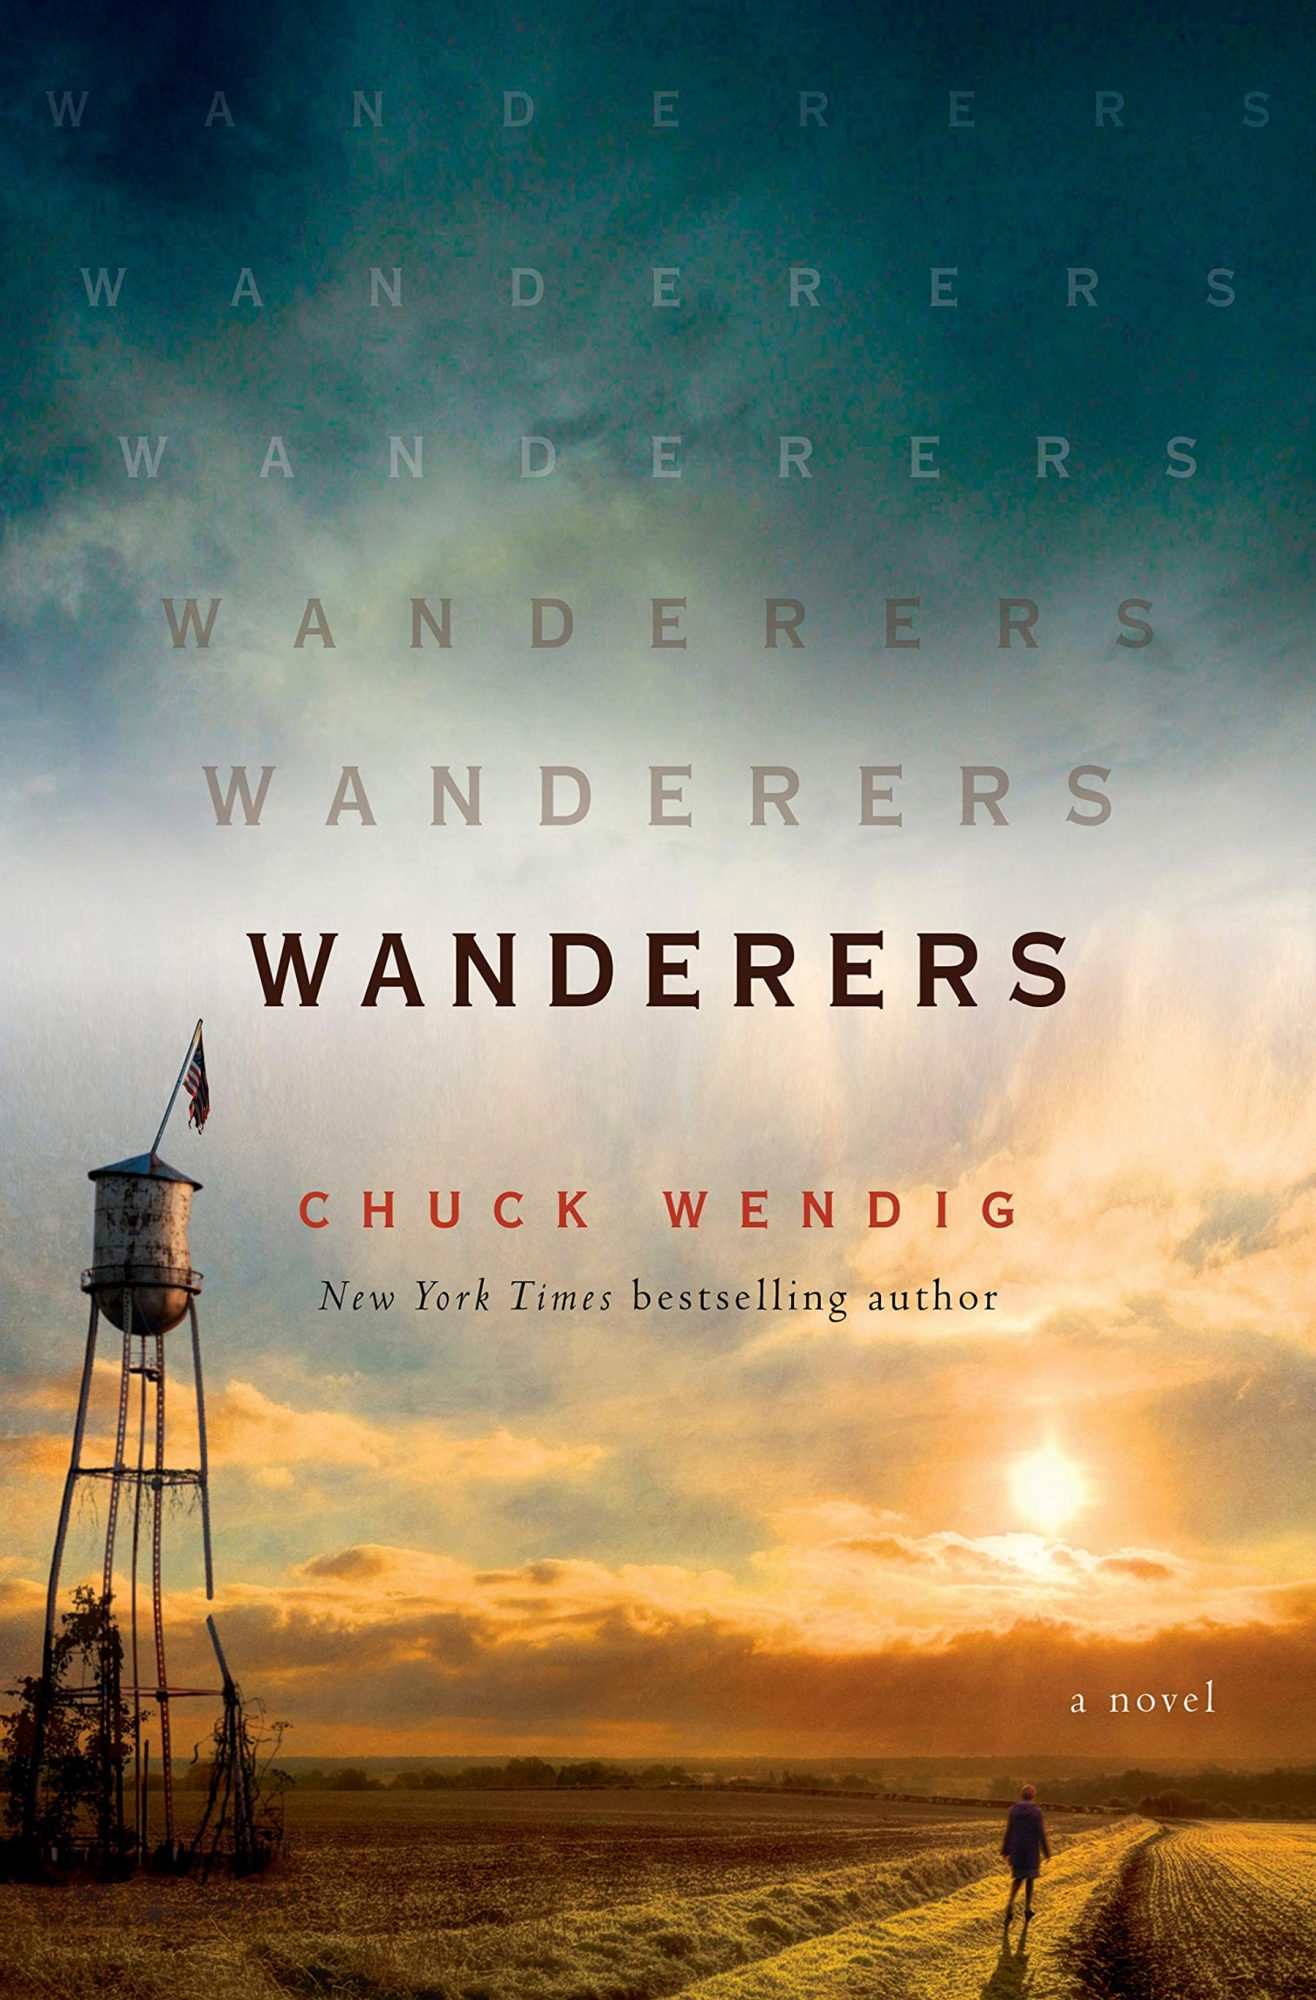 Wanderers, by Chuck Wendig